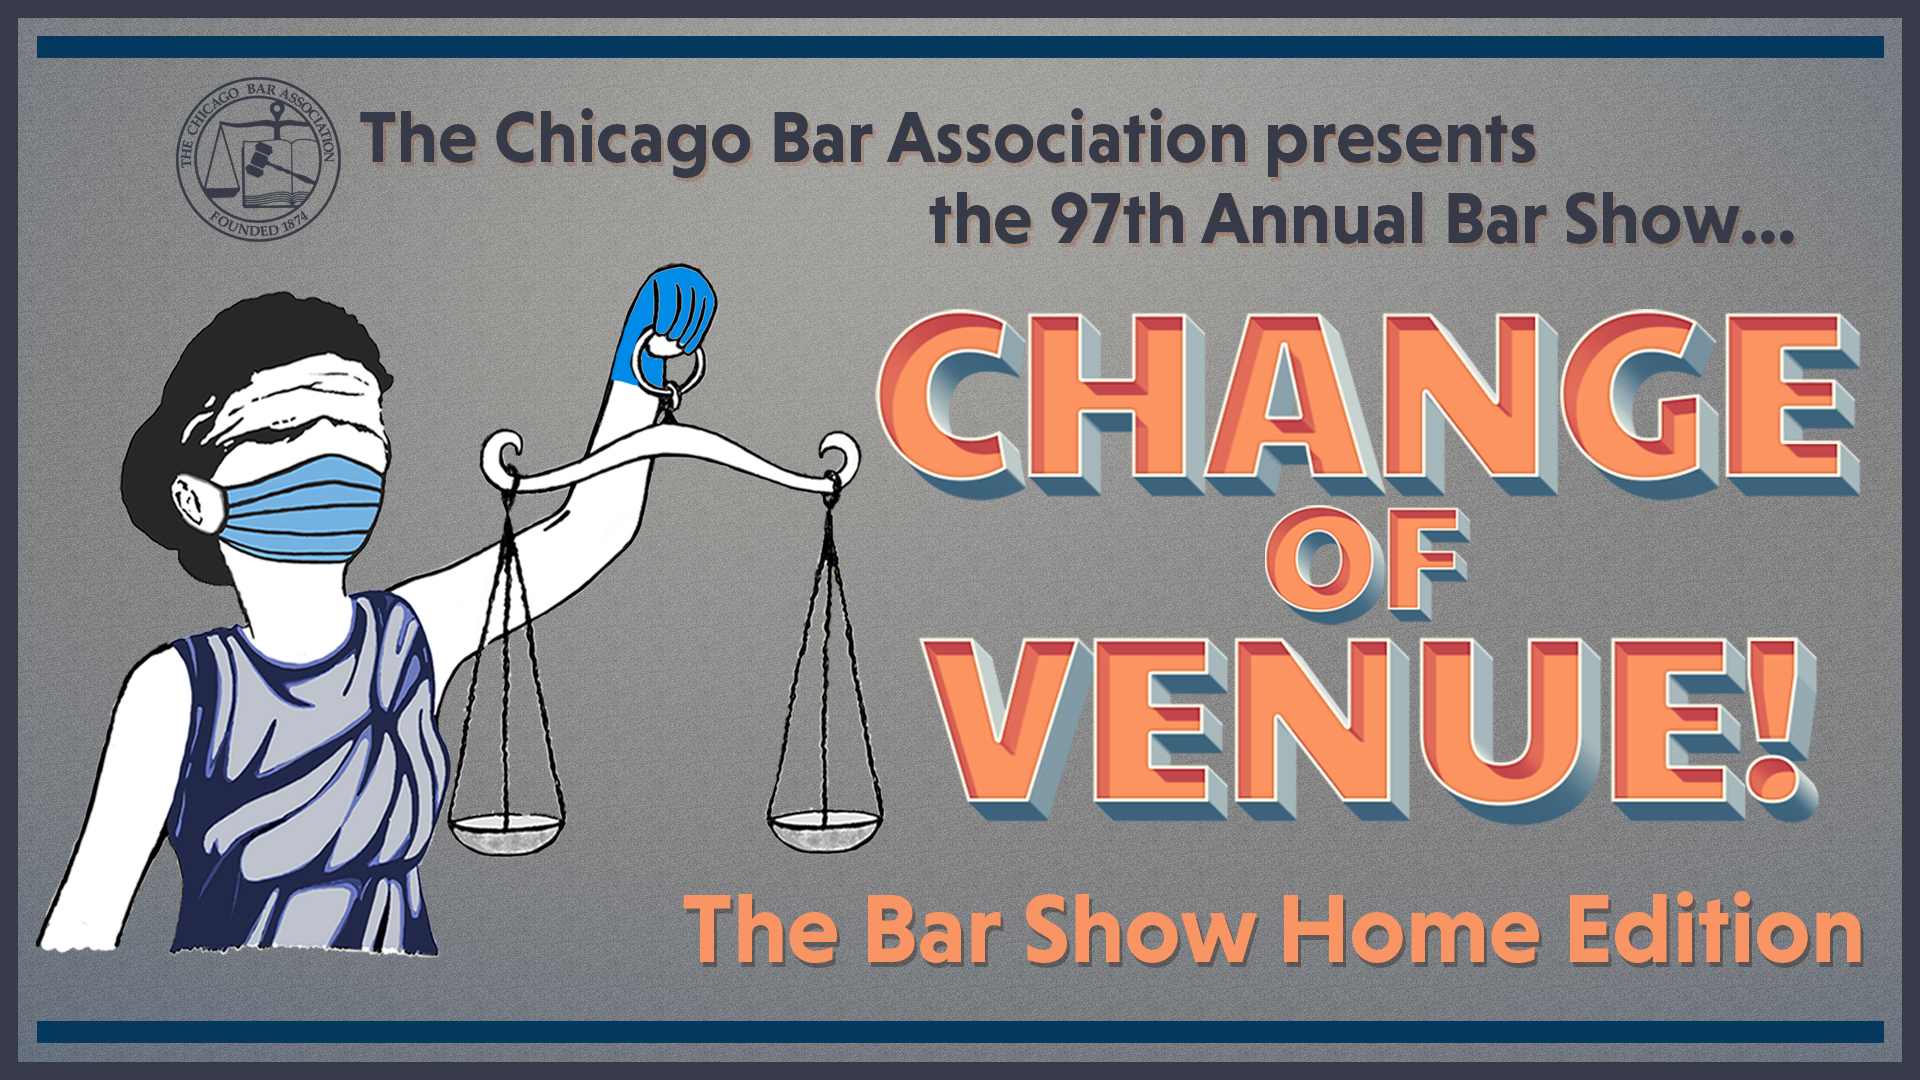 Change of Venue! The Bar Show Home Edition